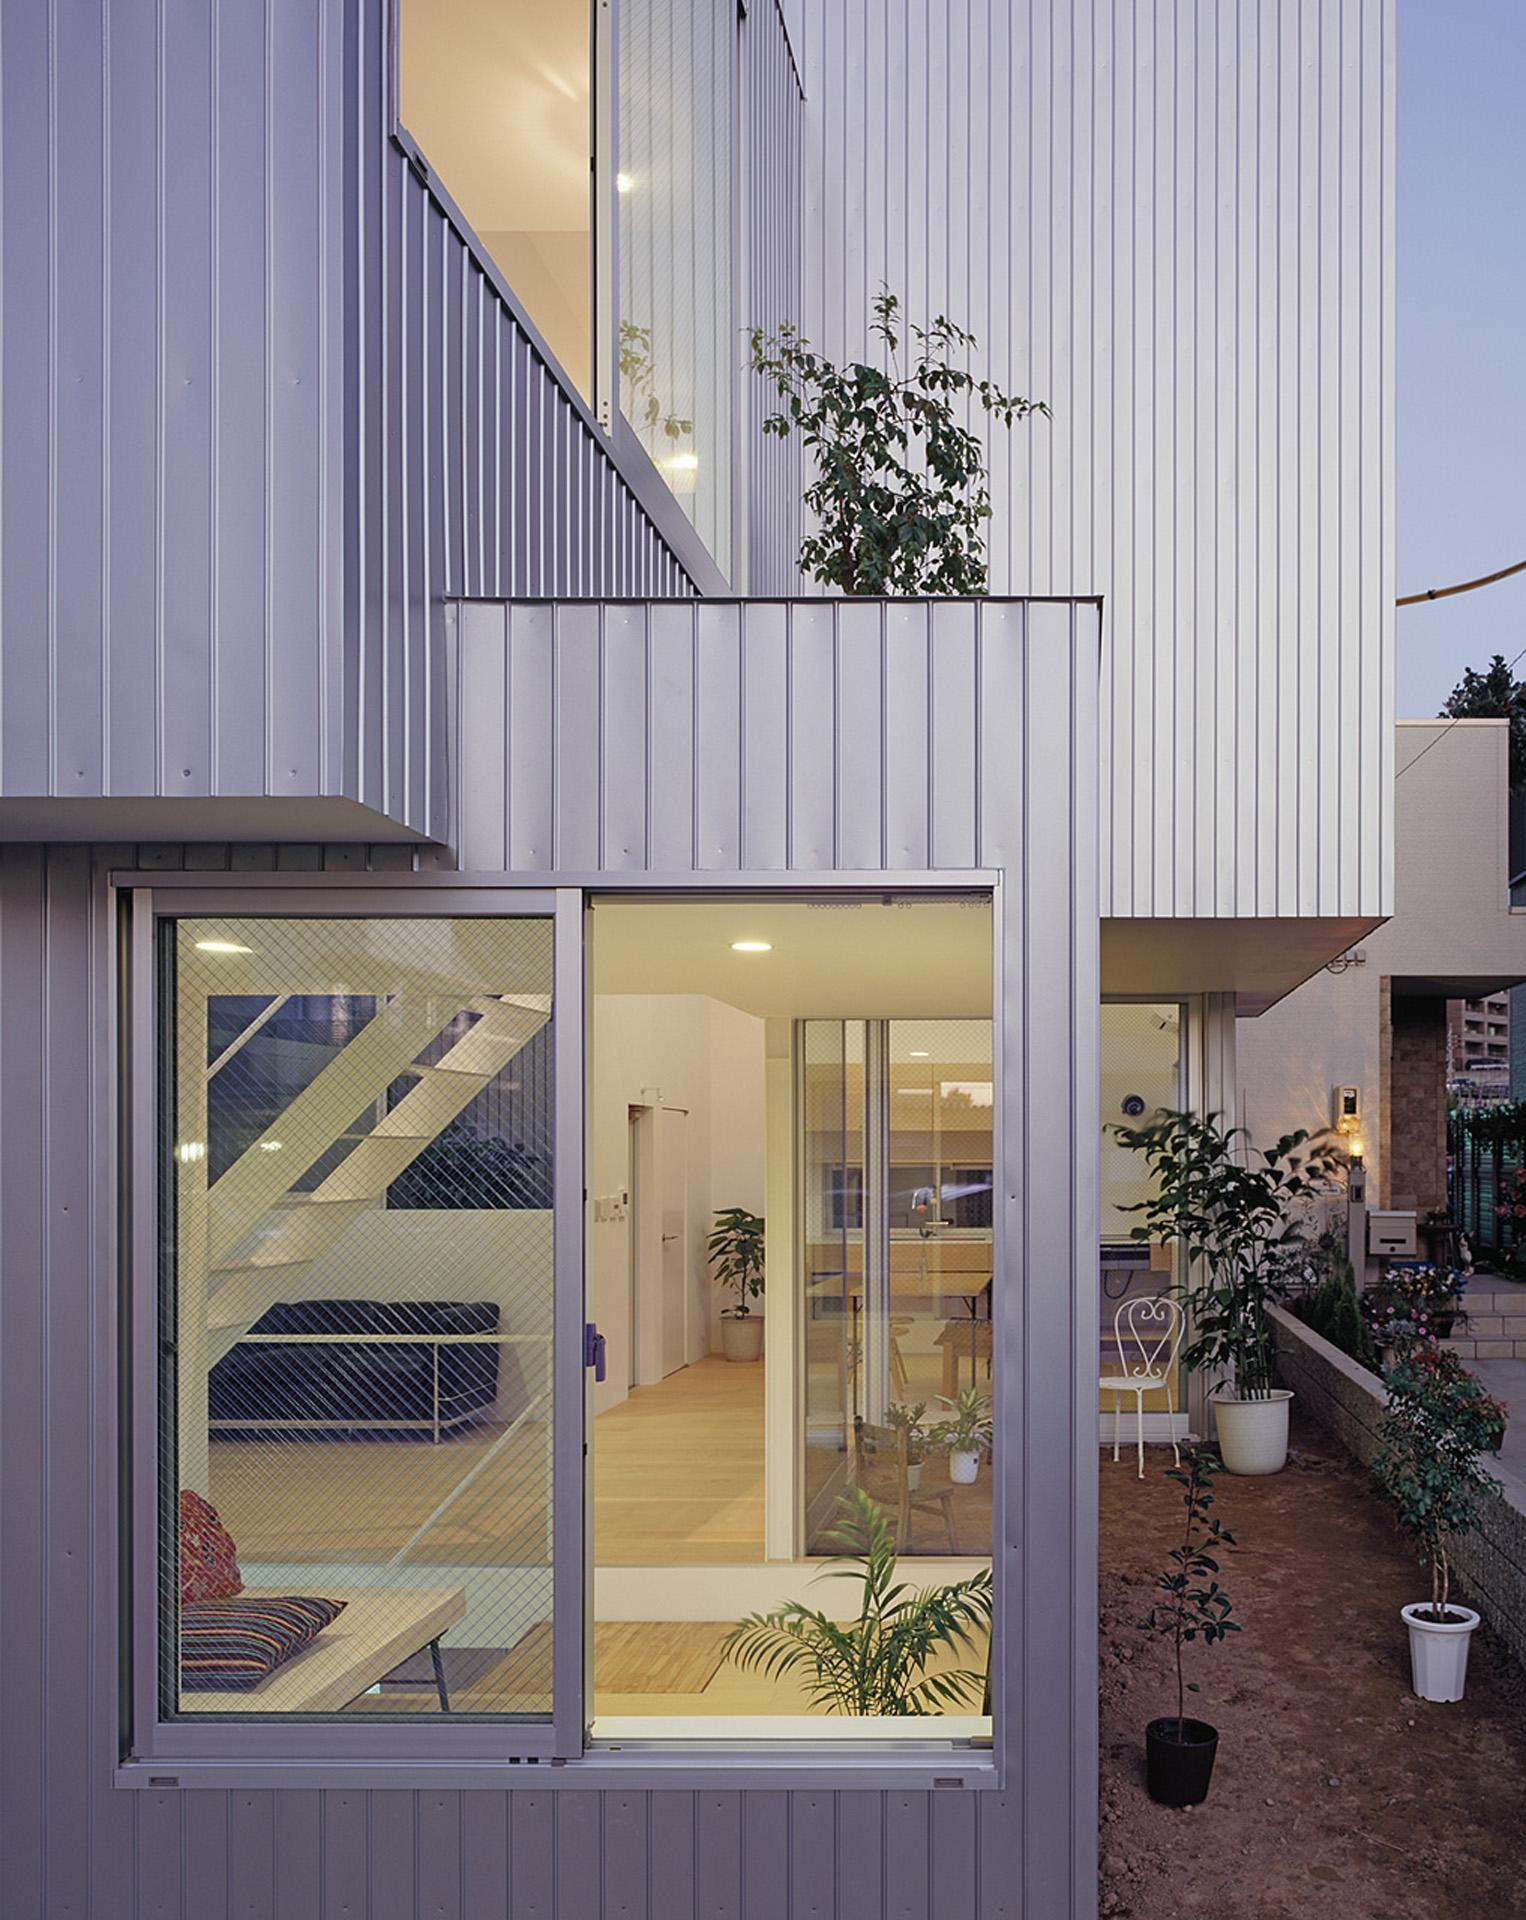 Charmant A Small House That Maximizes Family Time | Tetsuo Kondo Architects